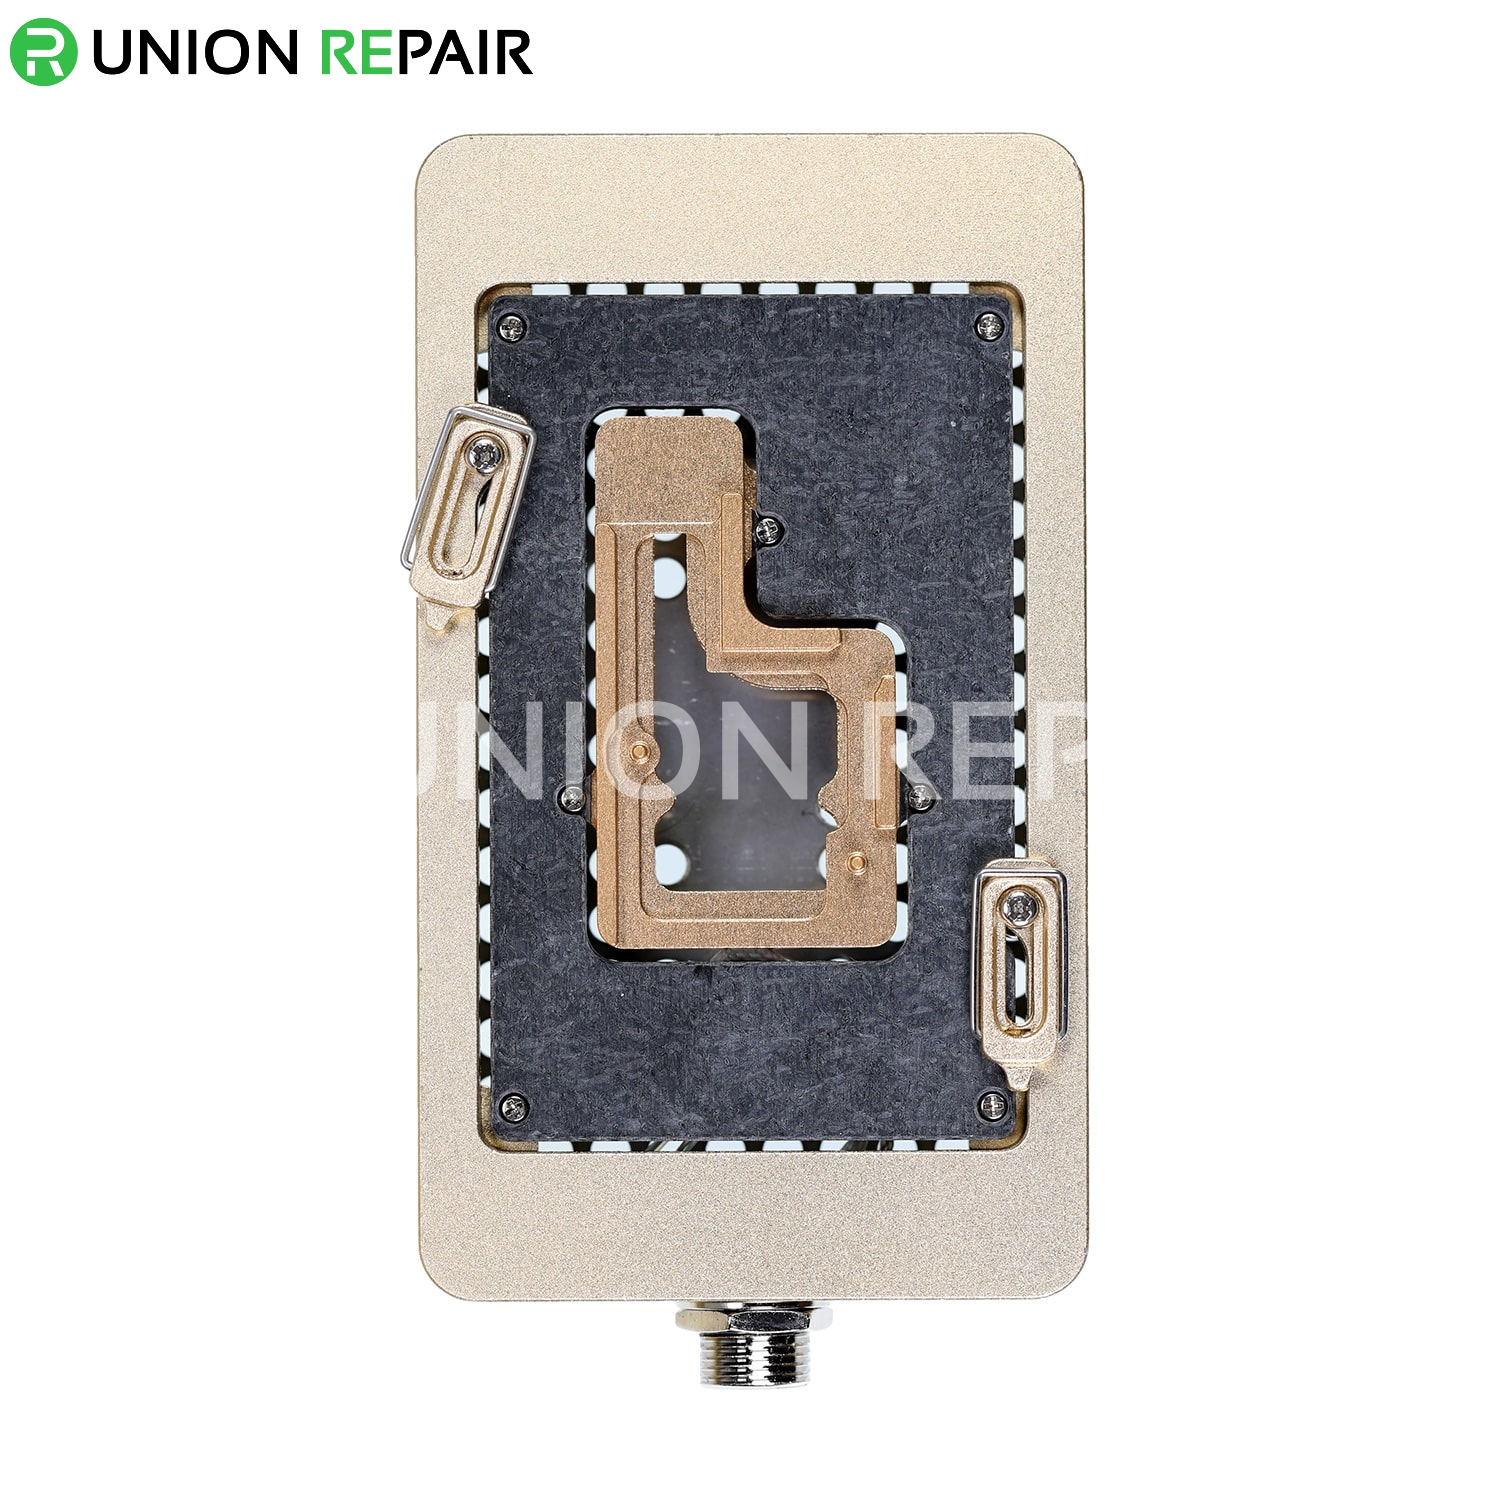 WL HT007 Intelligent Mainboard Layered Soldering Station for iPhone X/XS/XSMAX/11/11 Pro/11 Pro Max